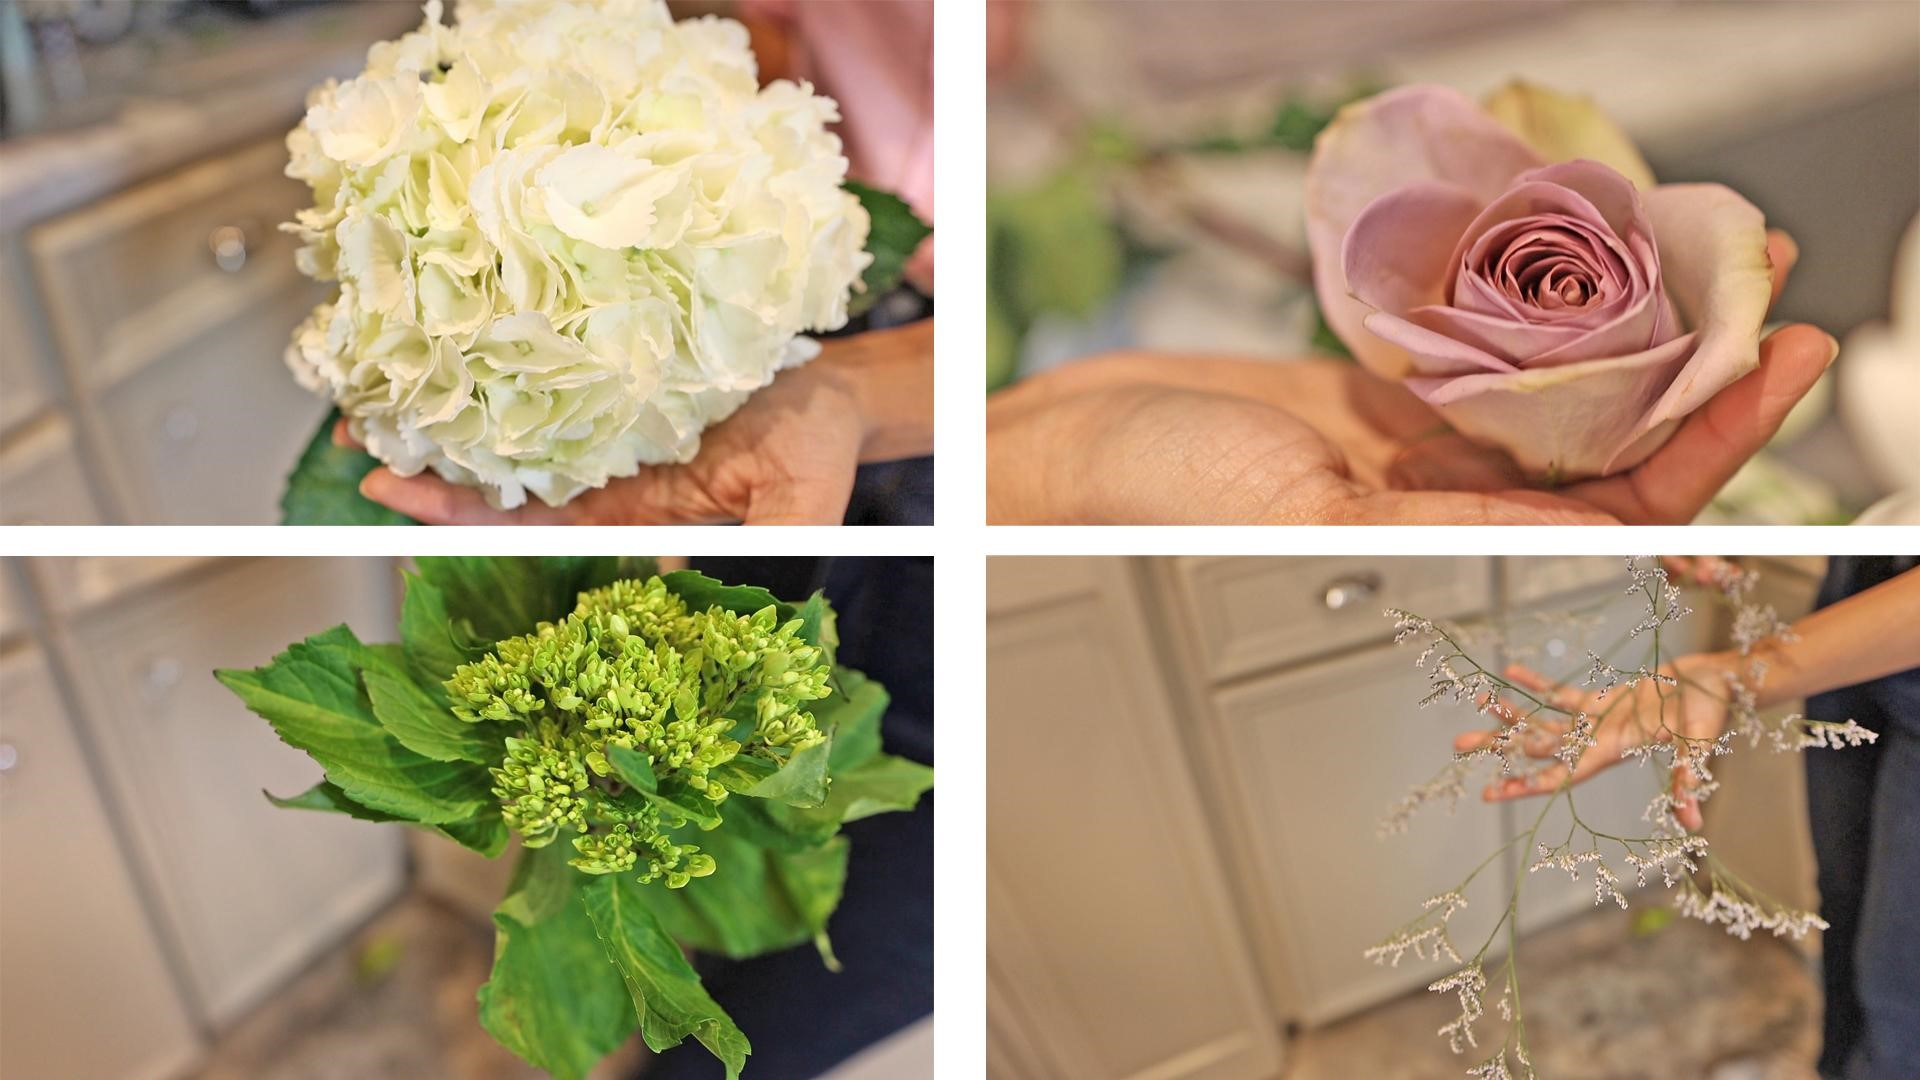 Amitha holding white and green hydrangea flowers, dusty pink rose, and sea lavender